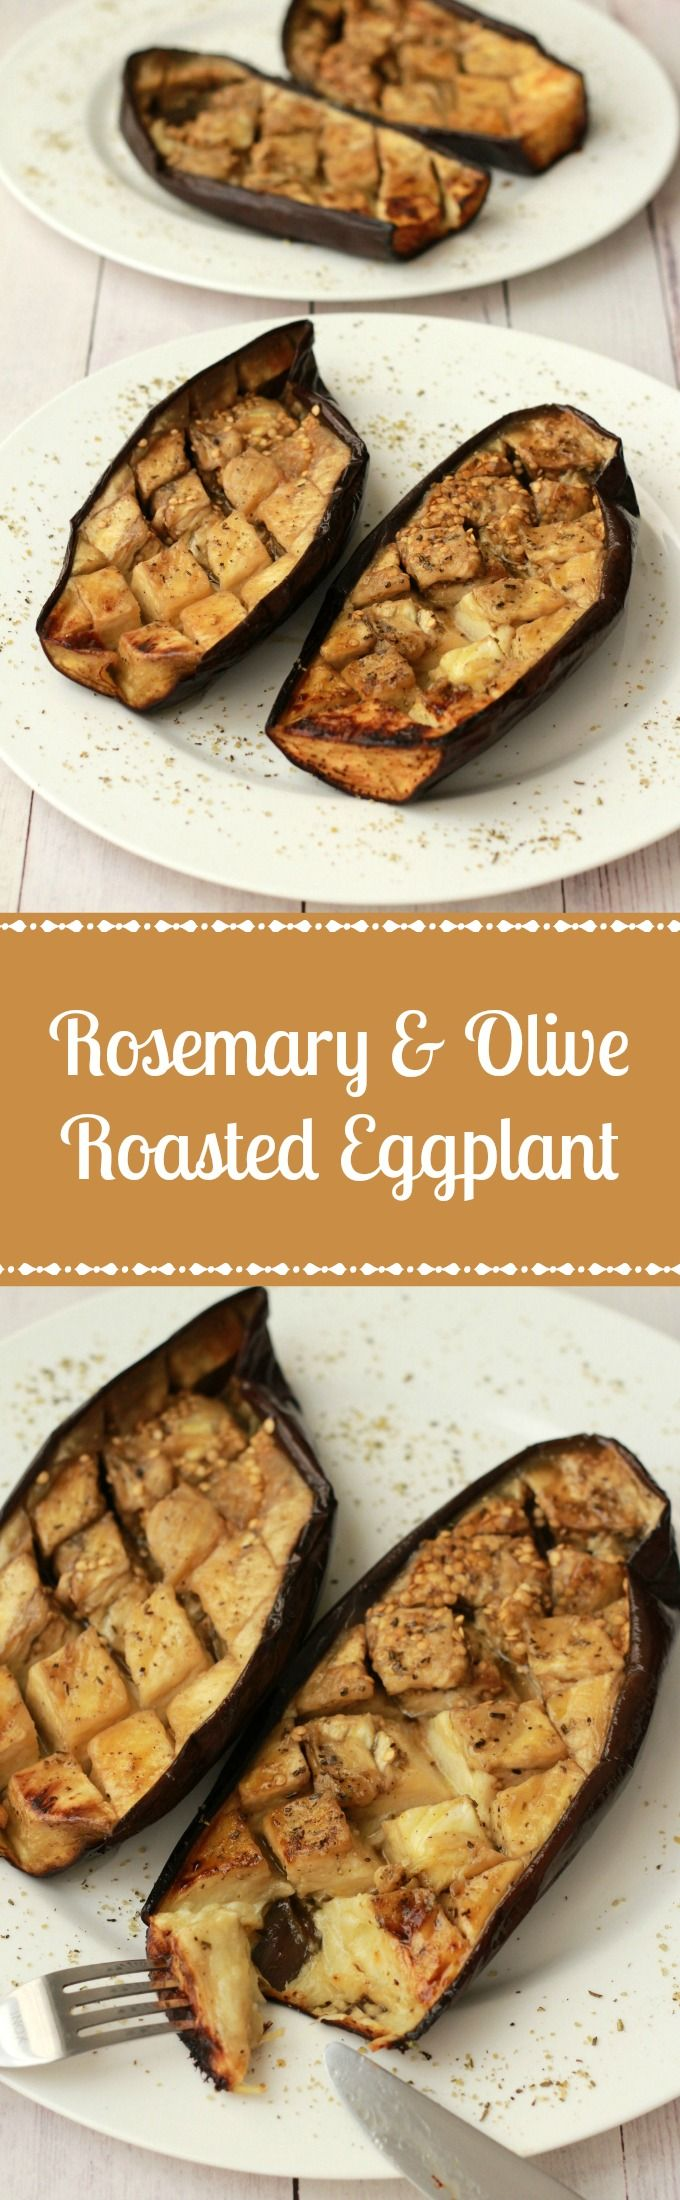 Rosemary and Olive Oil Roasted Eggplant #vegan